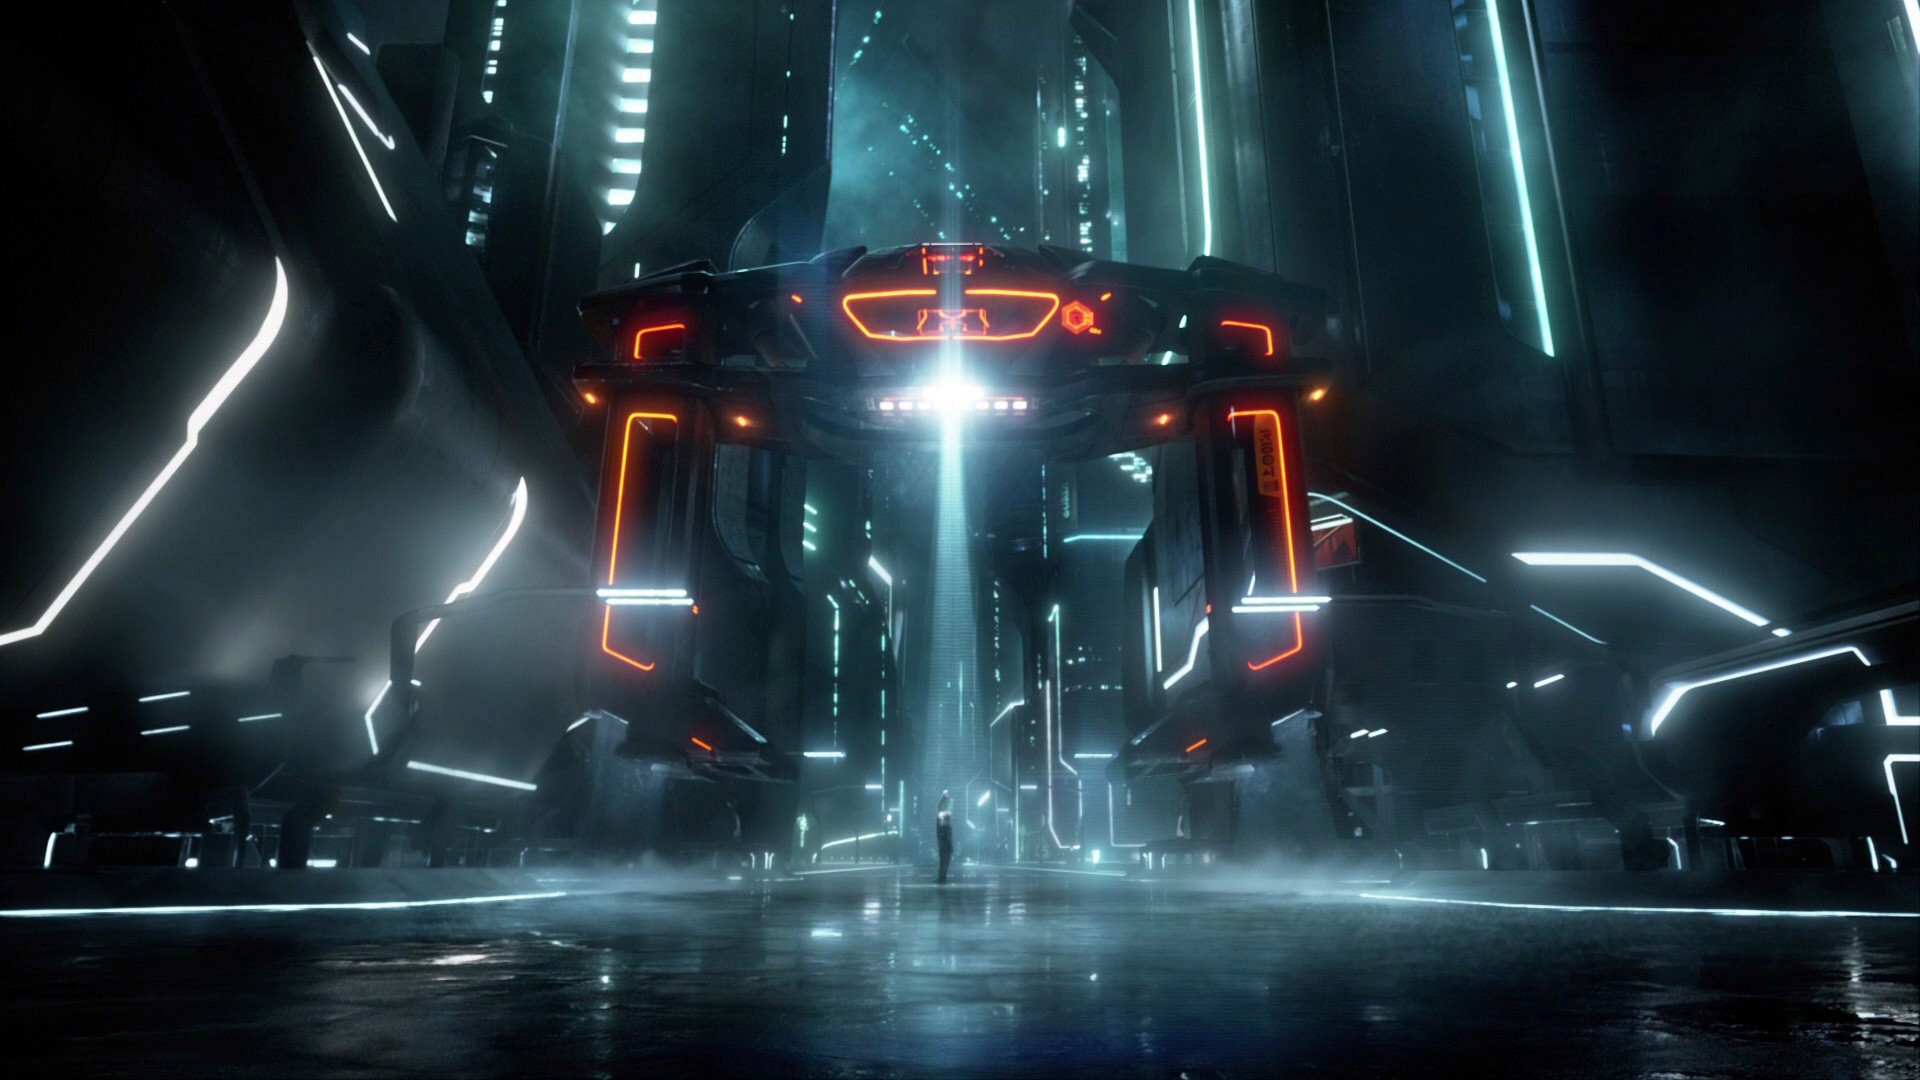 Tron_Legacy_-_Recognizer.jpg